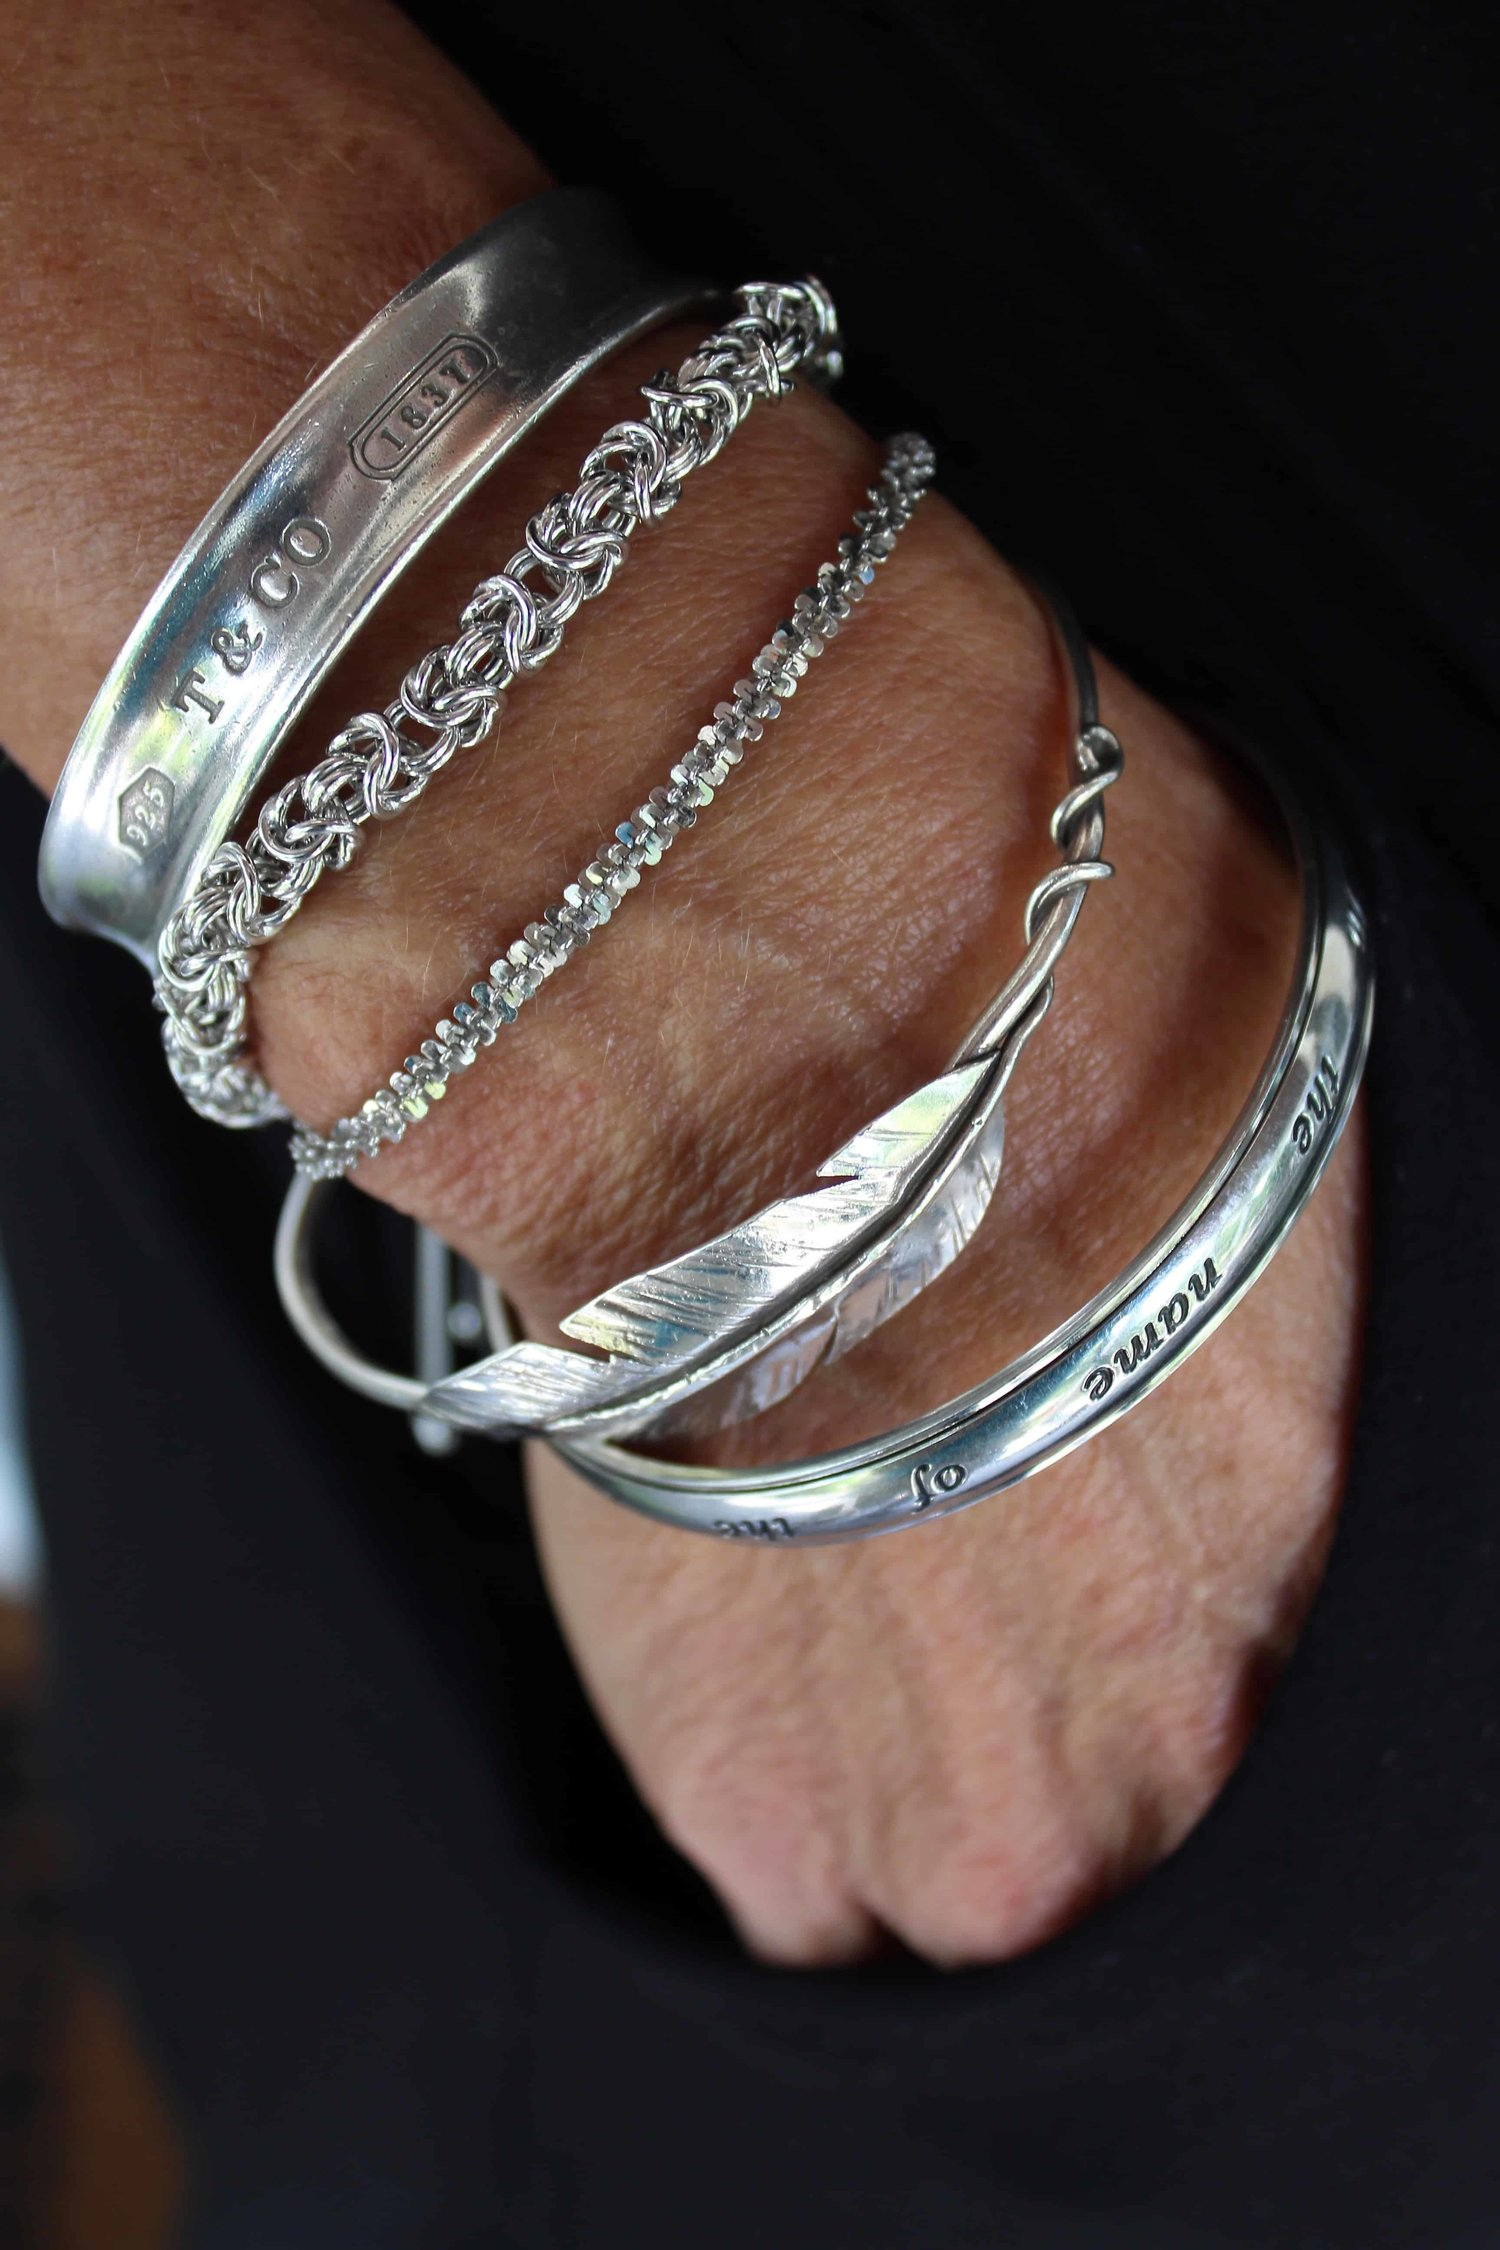 bb02a686209 The second bracelet underneath my Tiffany bracelet is the Silvertone  Byzantine and the next is the